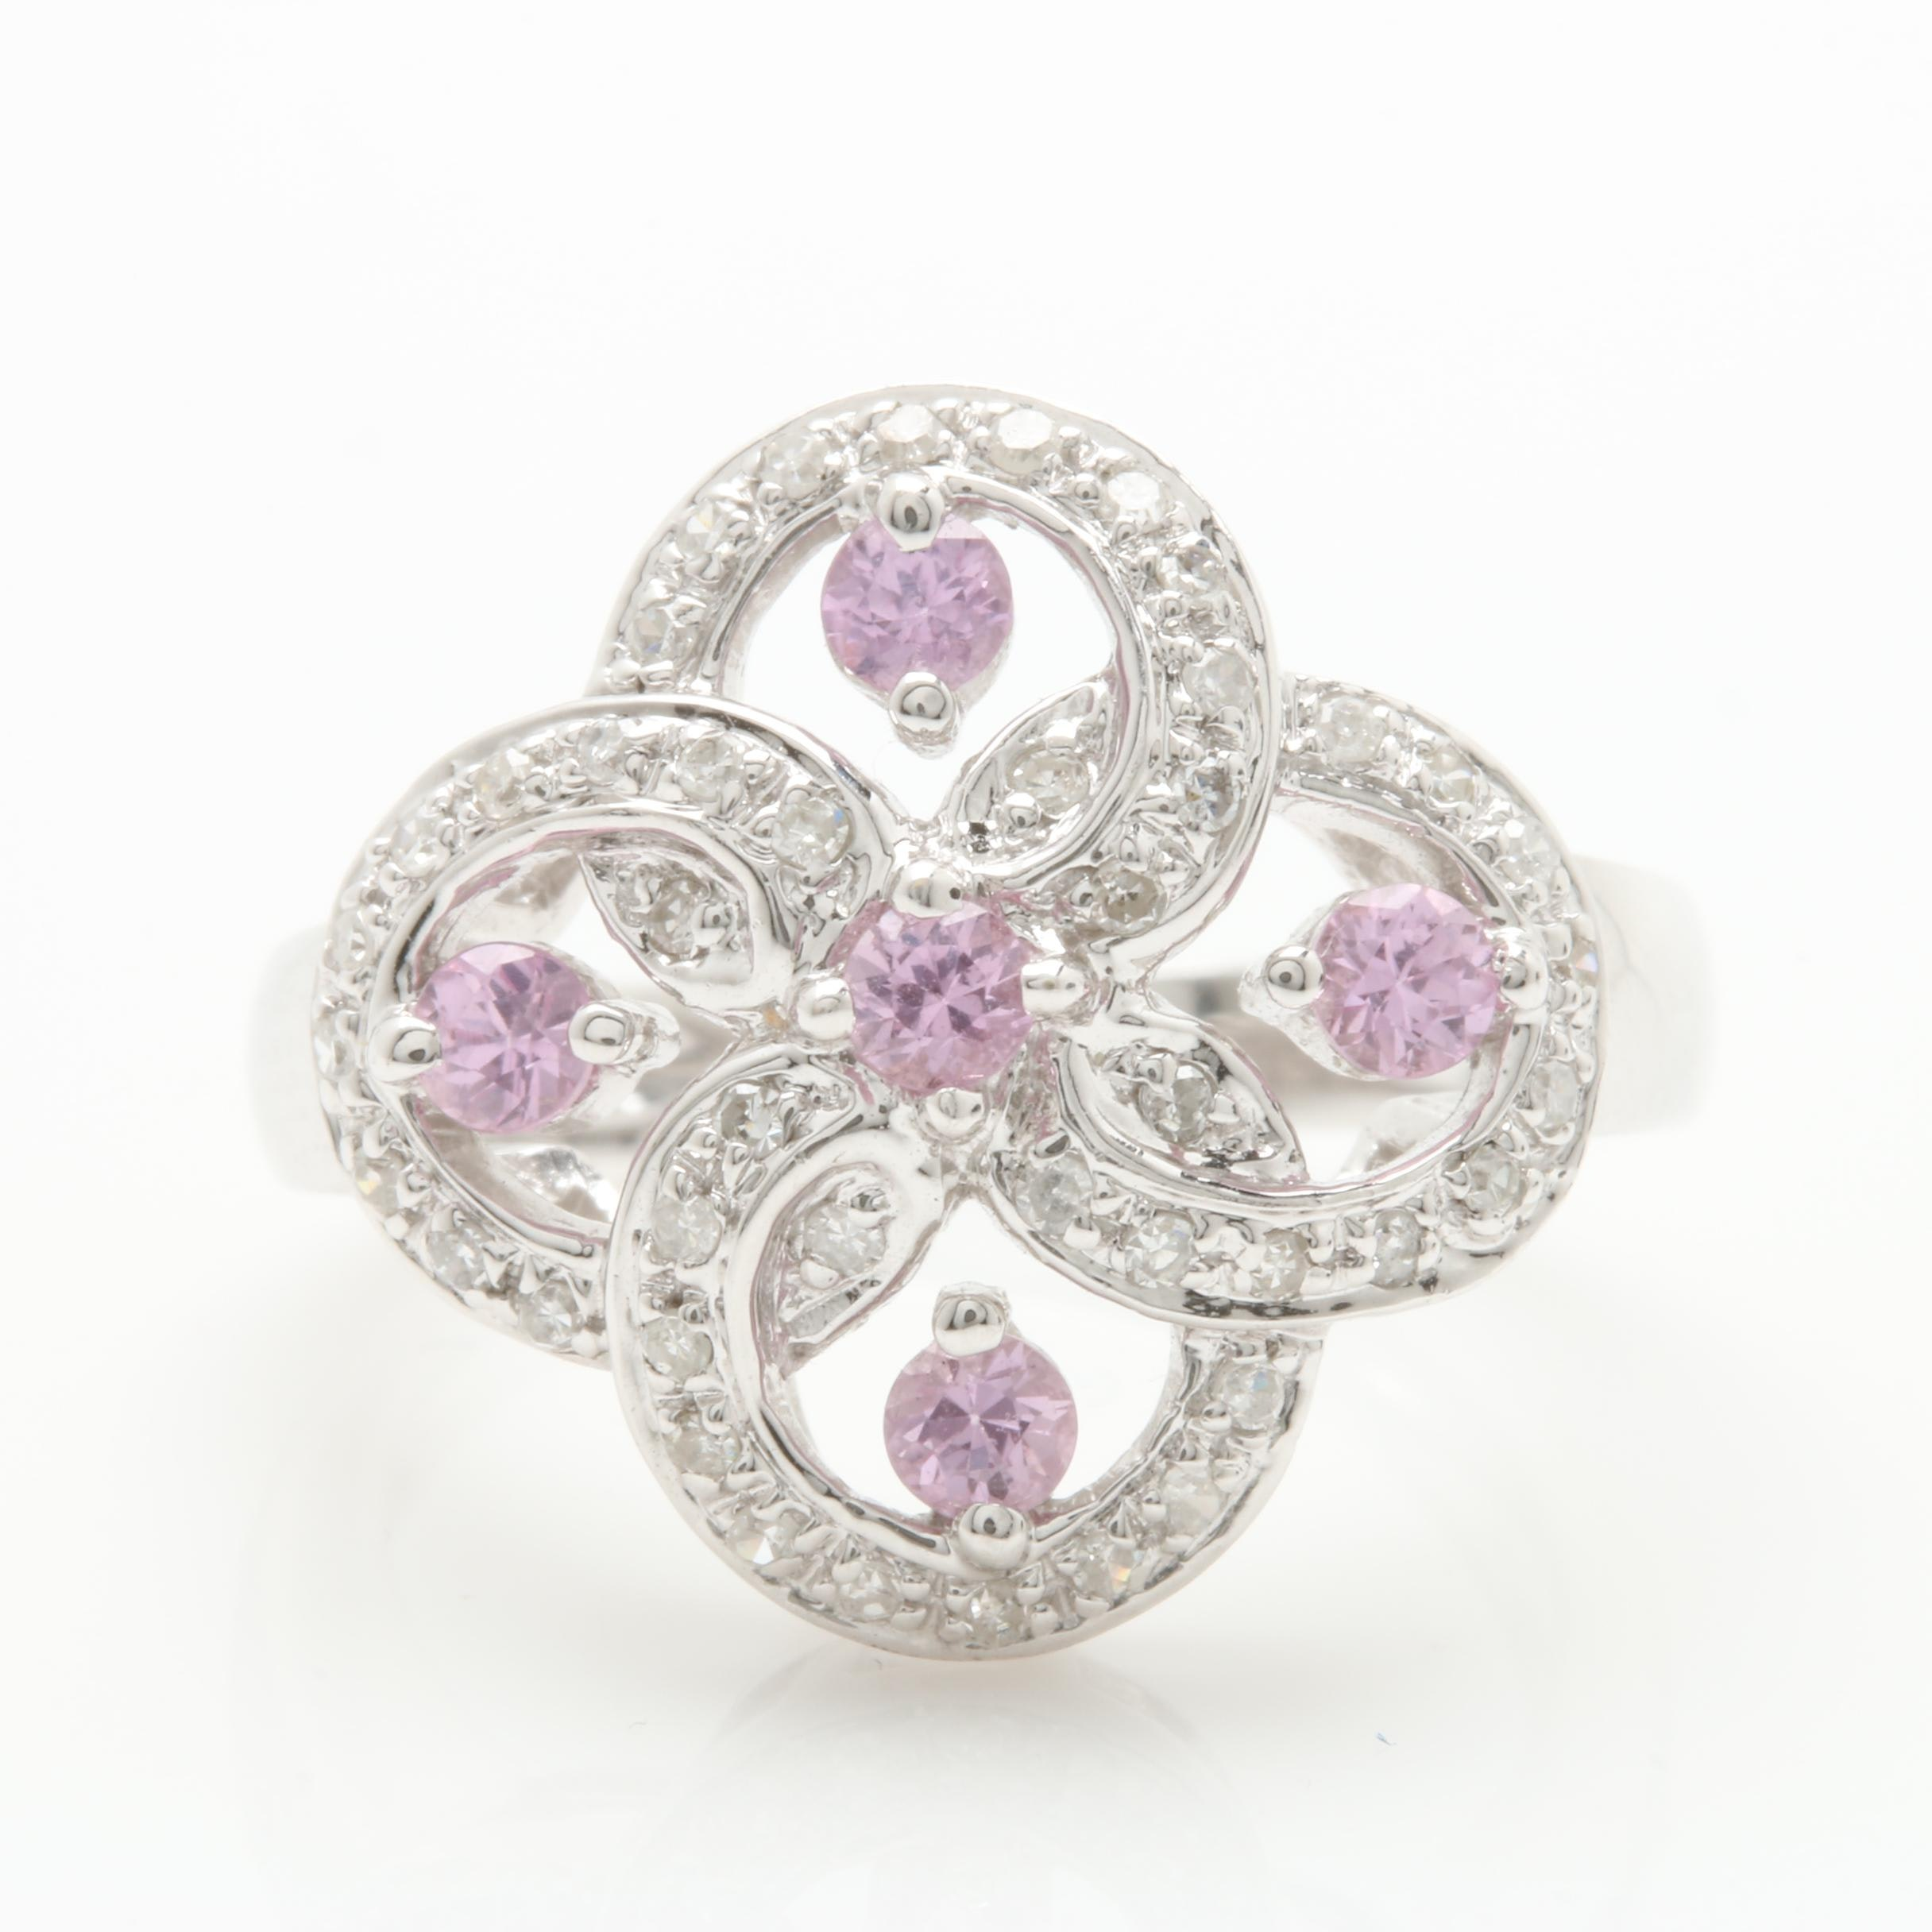 14K White Gold Untreated Pink Sapphire and Diamond Ring